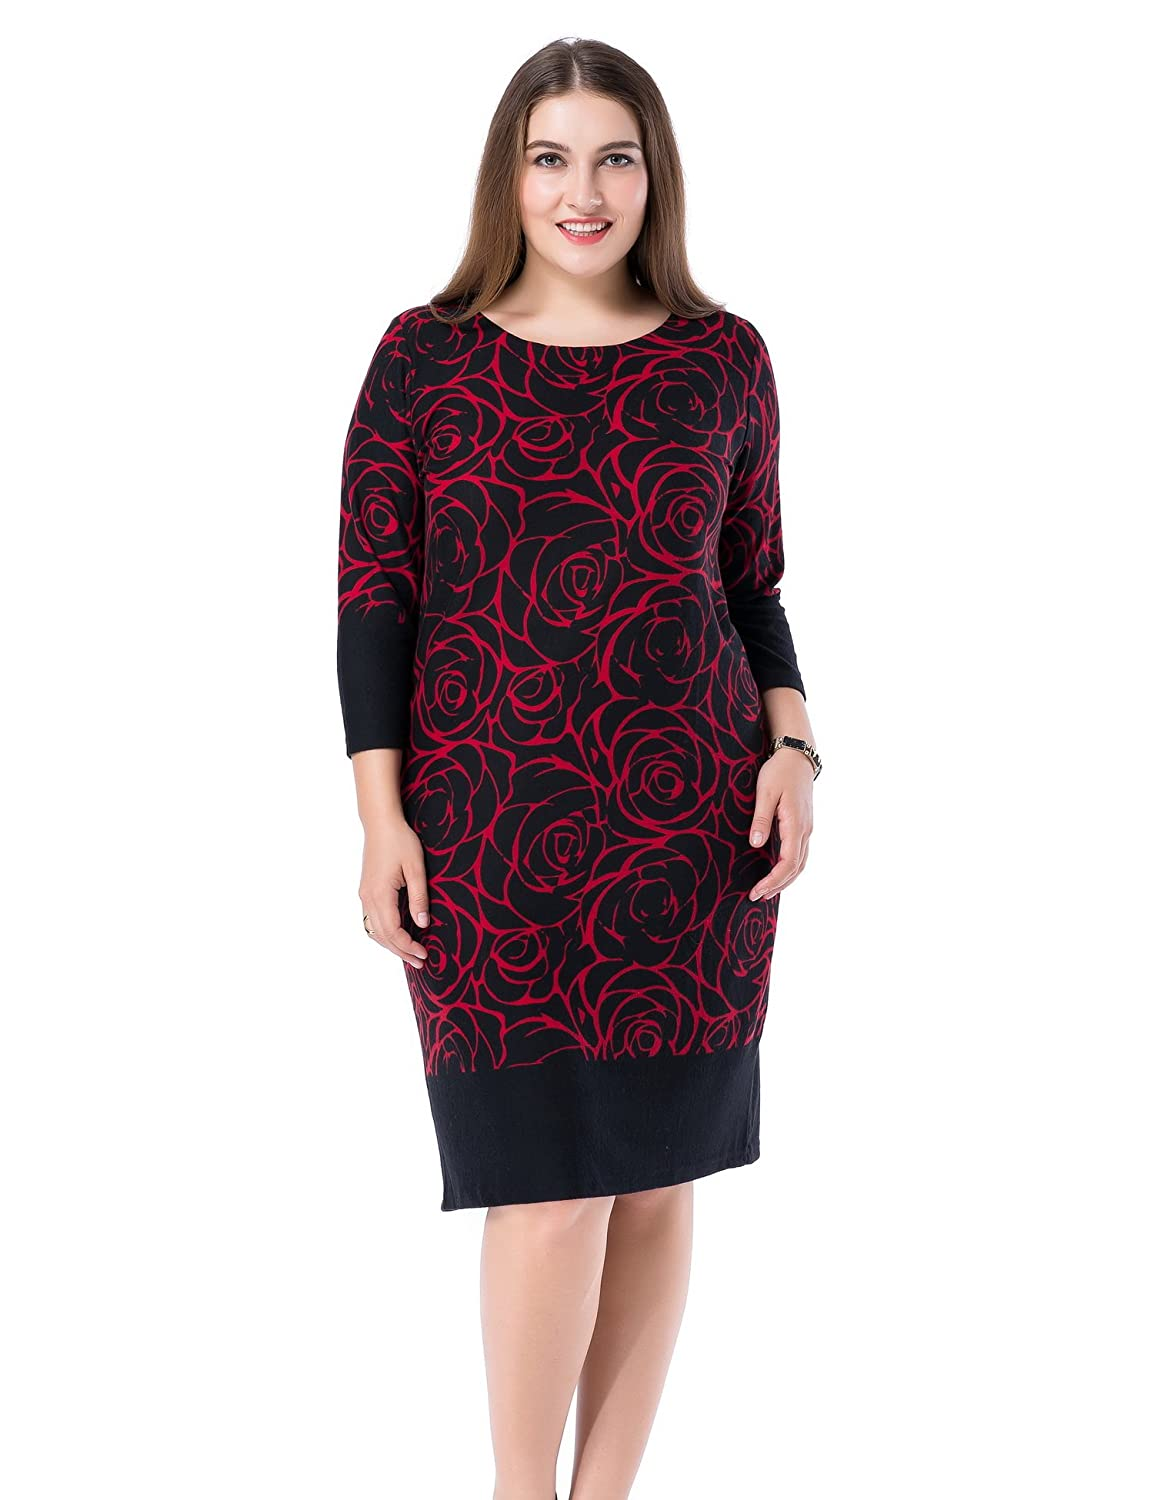 Chicwe Women's Plus Size Cashmere Touch Printed Shift Dress - Knee Length Work and Casual Dress C15C014